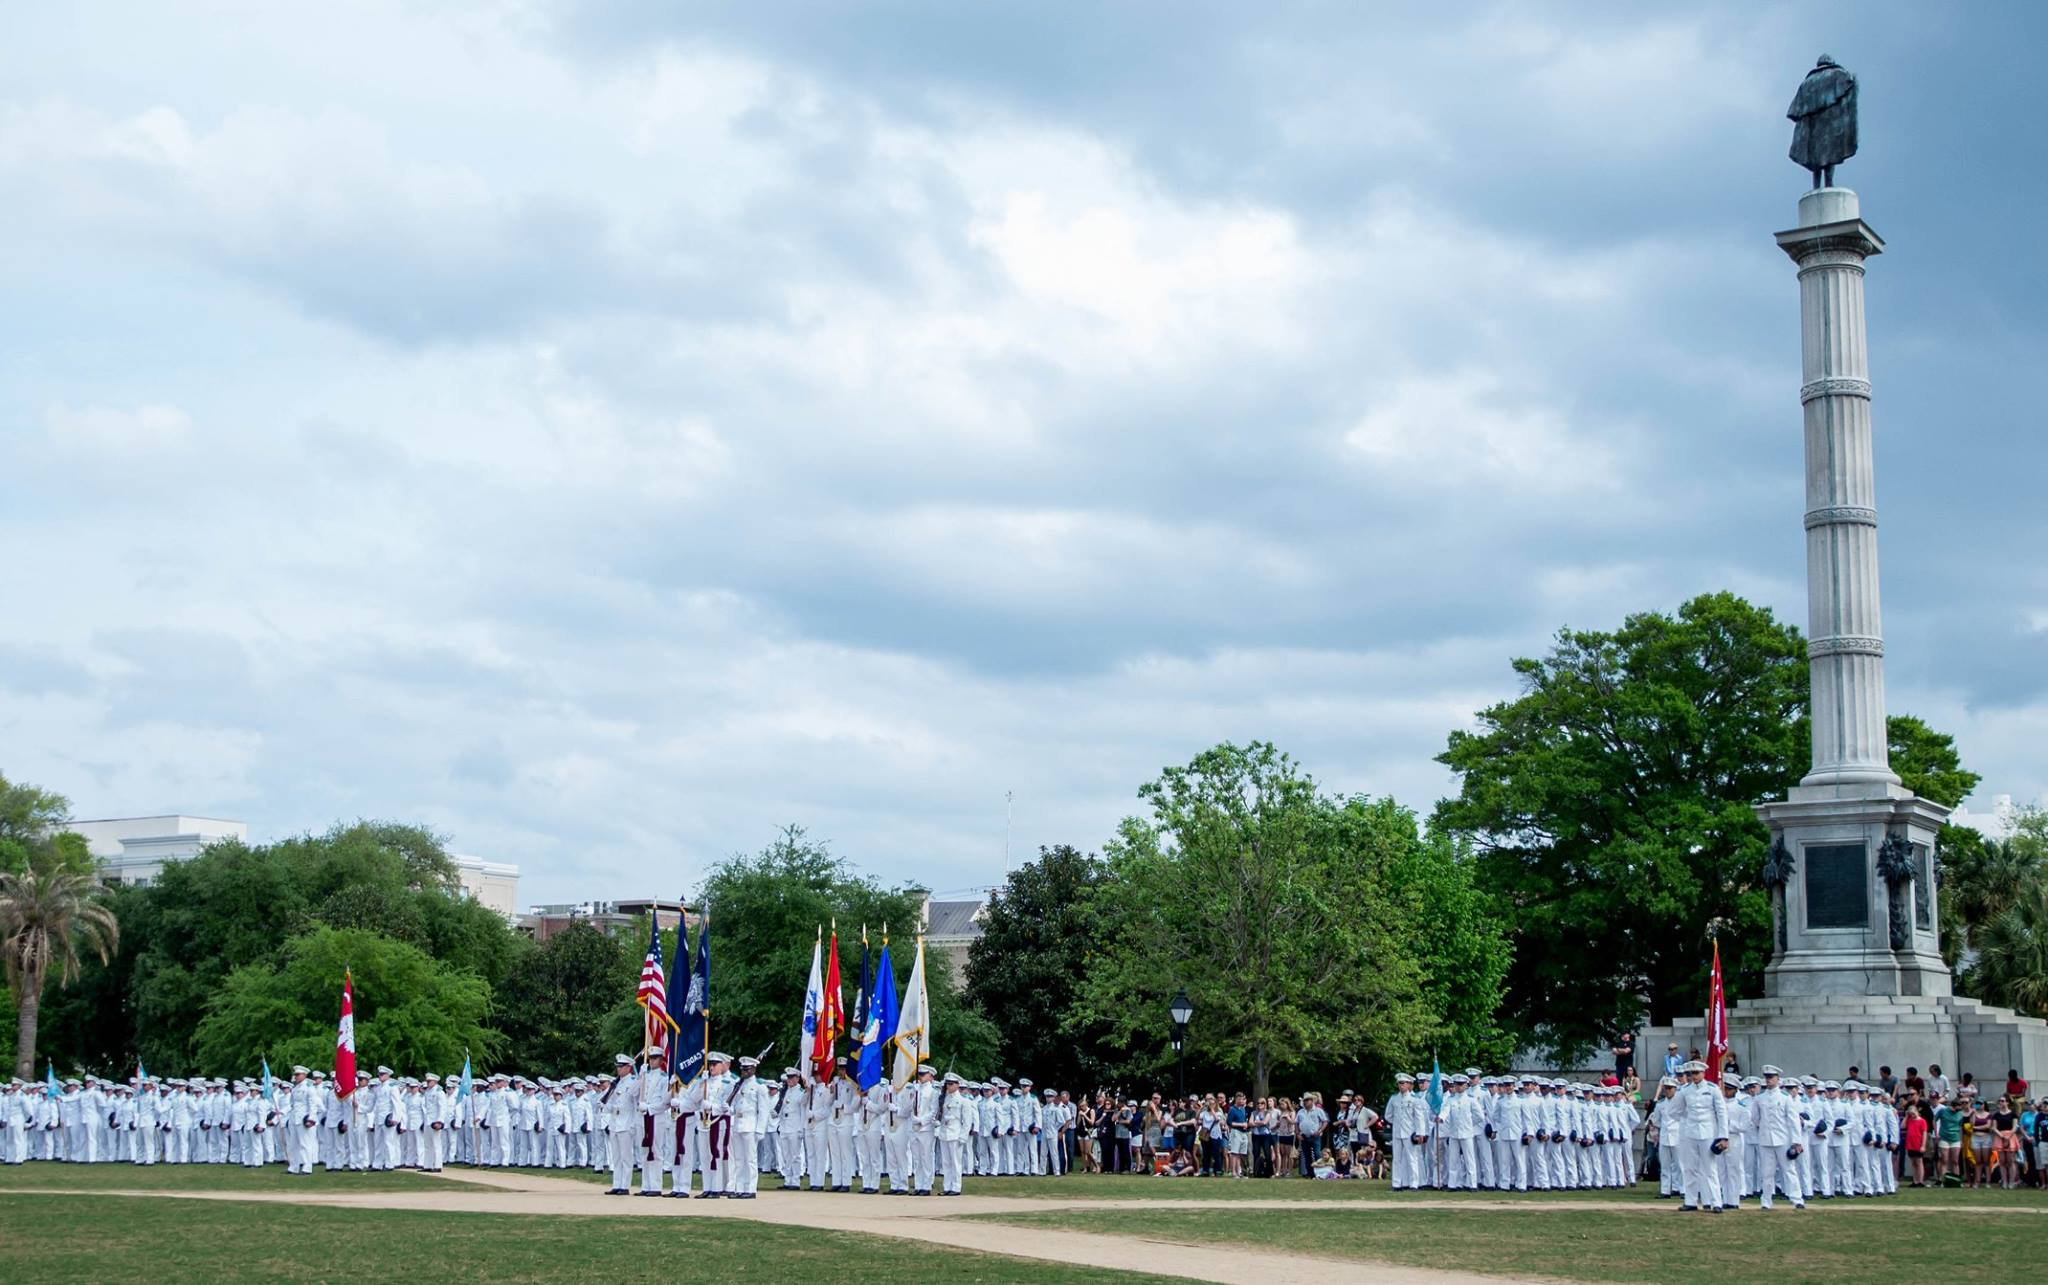 The Class of 2018 marched into Marion Square and affirmed their oath. Photo by Stacy Carter Photography Studios